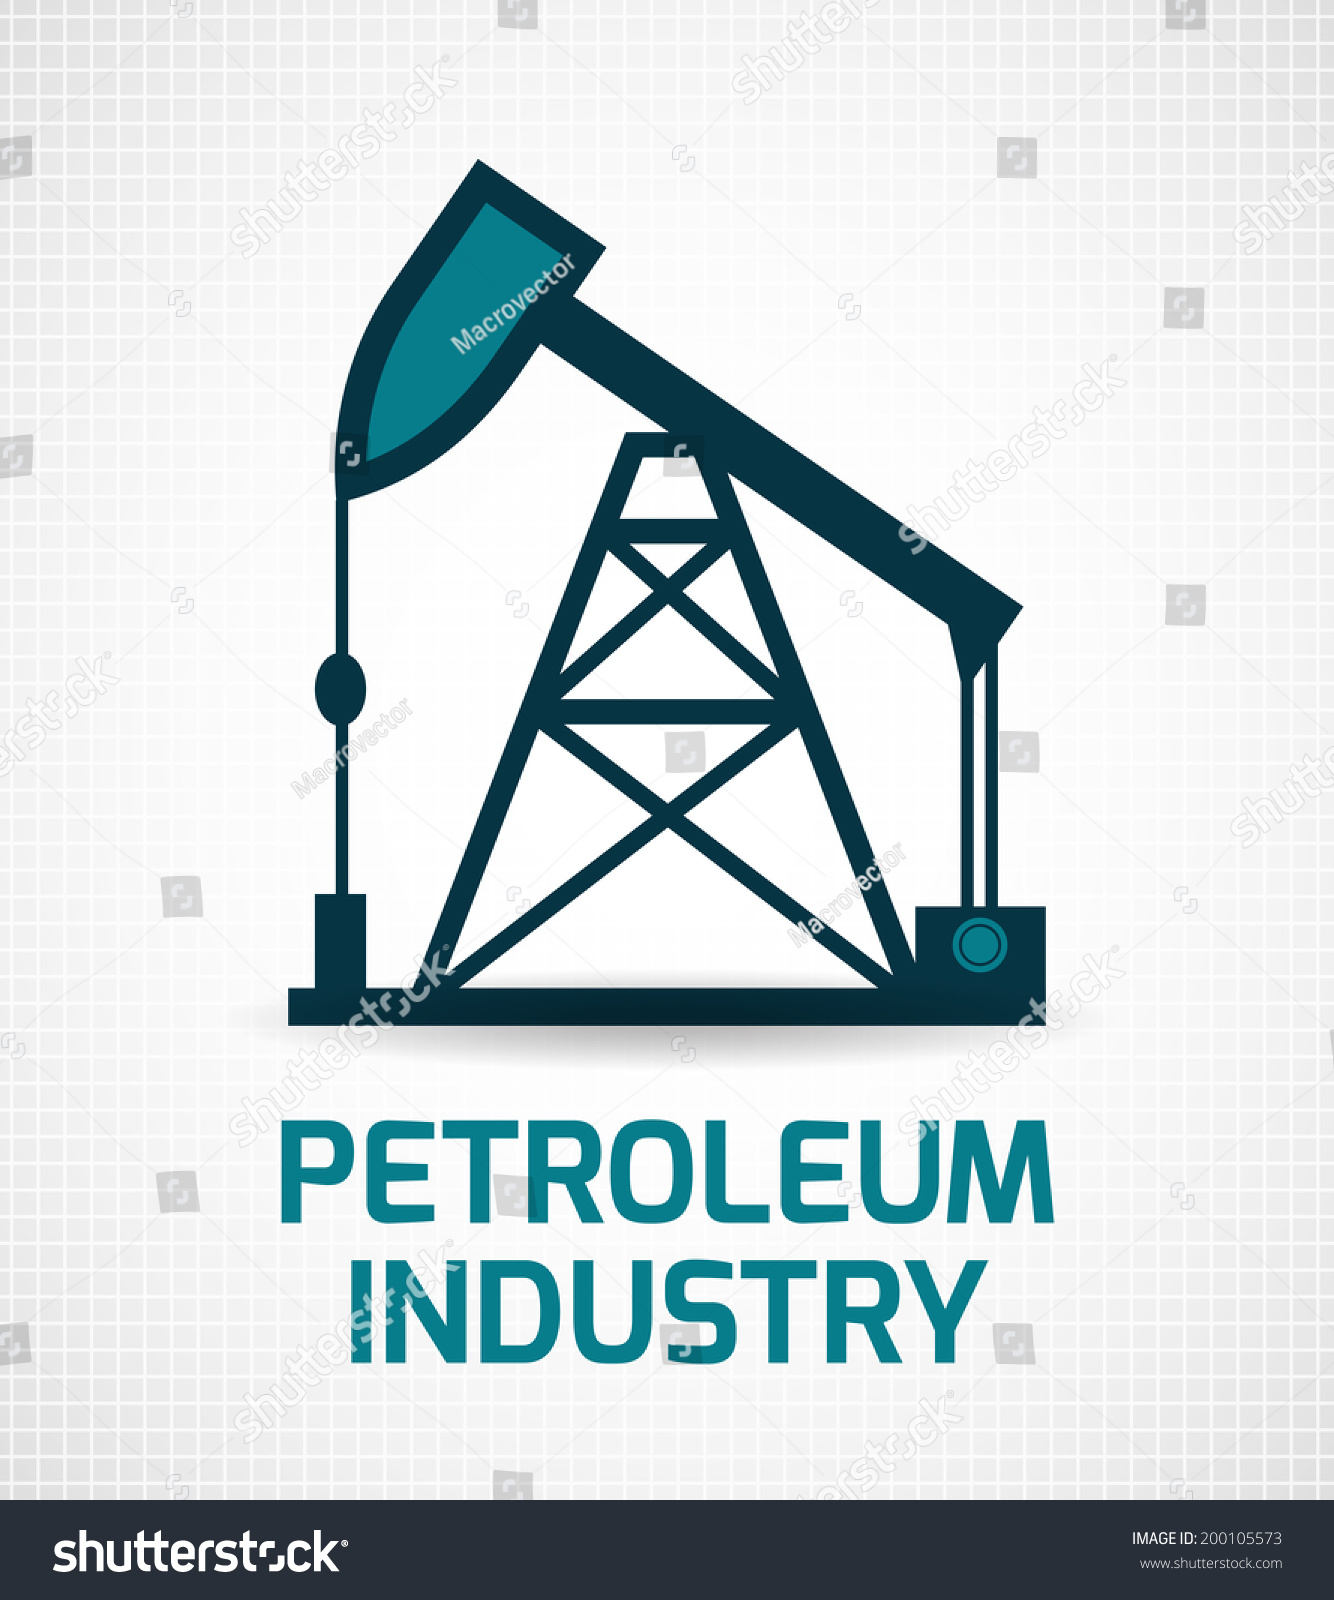 Crude oil trading symbol qatar what is currency trading dubai crude oil is petroleum product that is a major driving force for several countries and the global economyfutures lower even as crude oil rises stock buycottarizona Choice Image